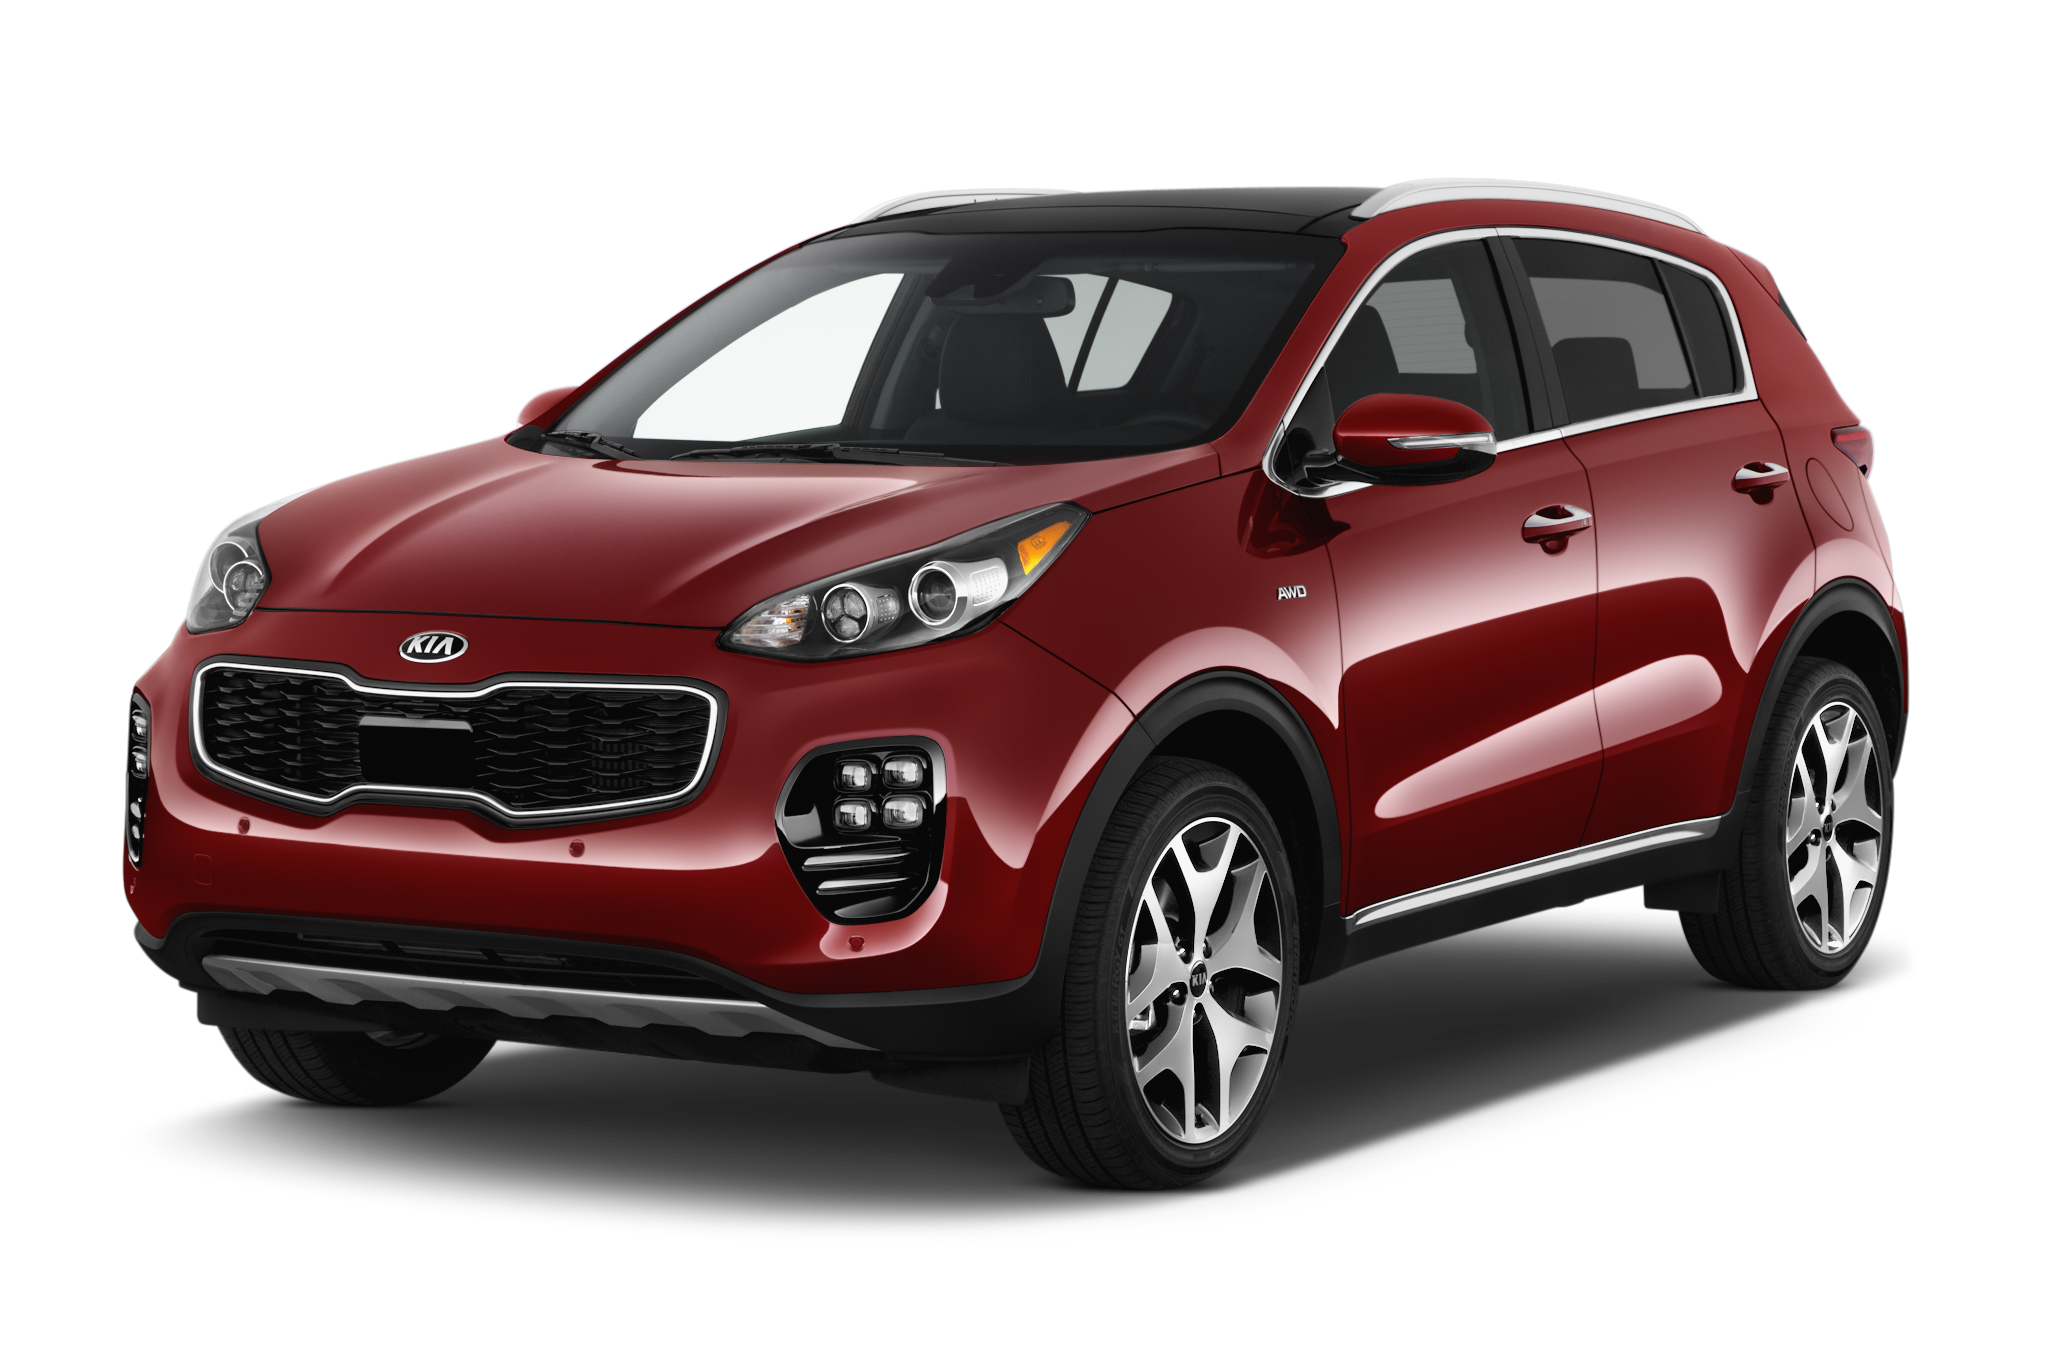 2017 kia sportage crossover makes u s debut in los angeles. Black Bedroom Furniture Sets. Home Design Ideas